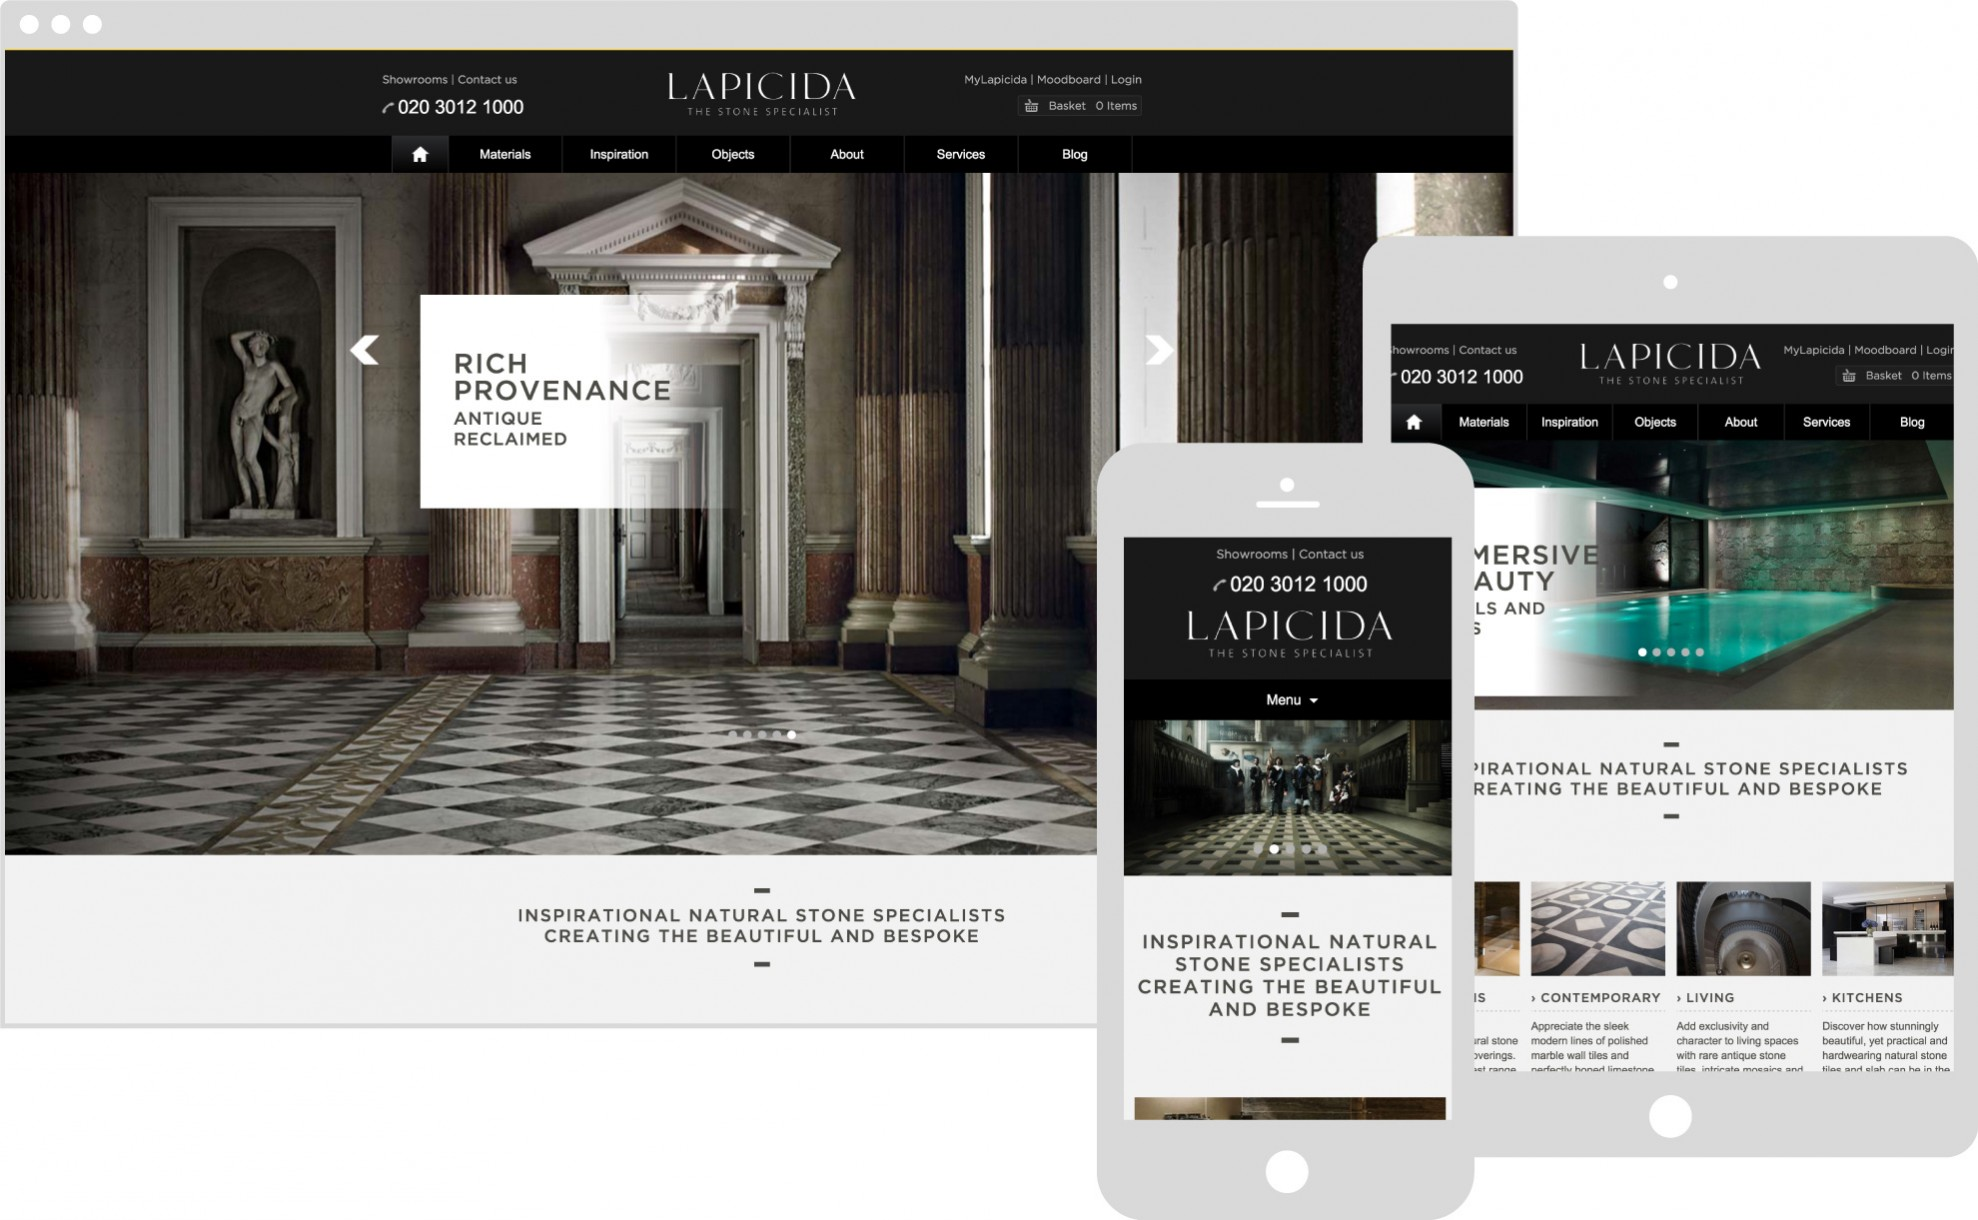 Lapicida website displaying on multiple devices